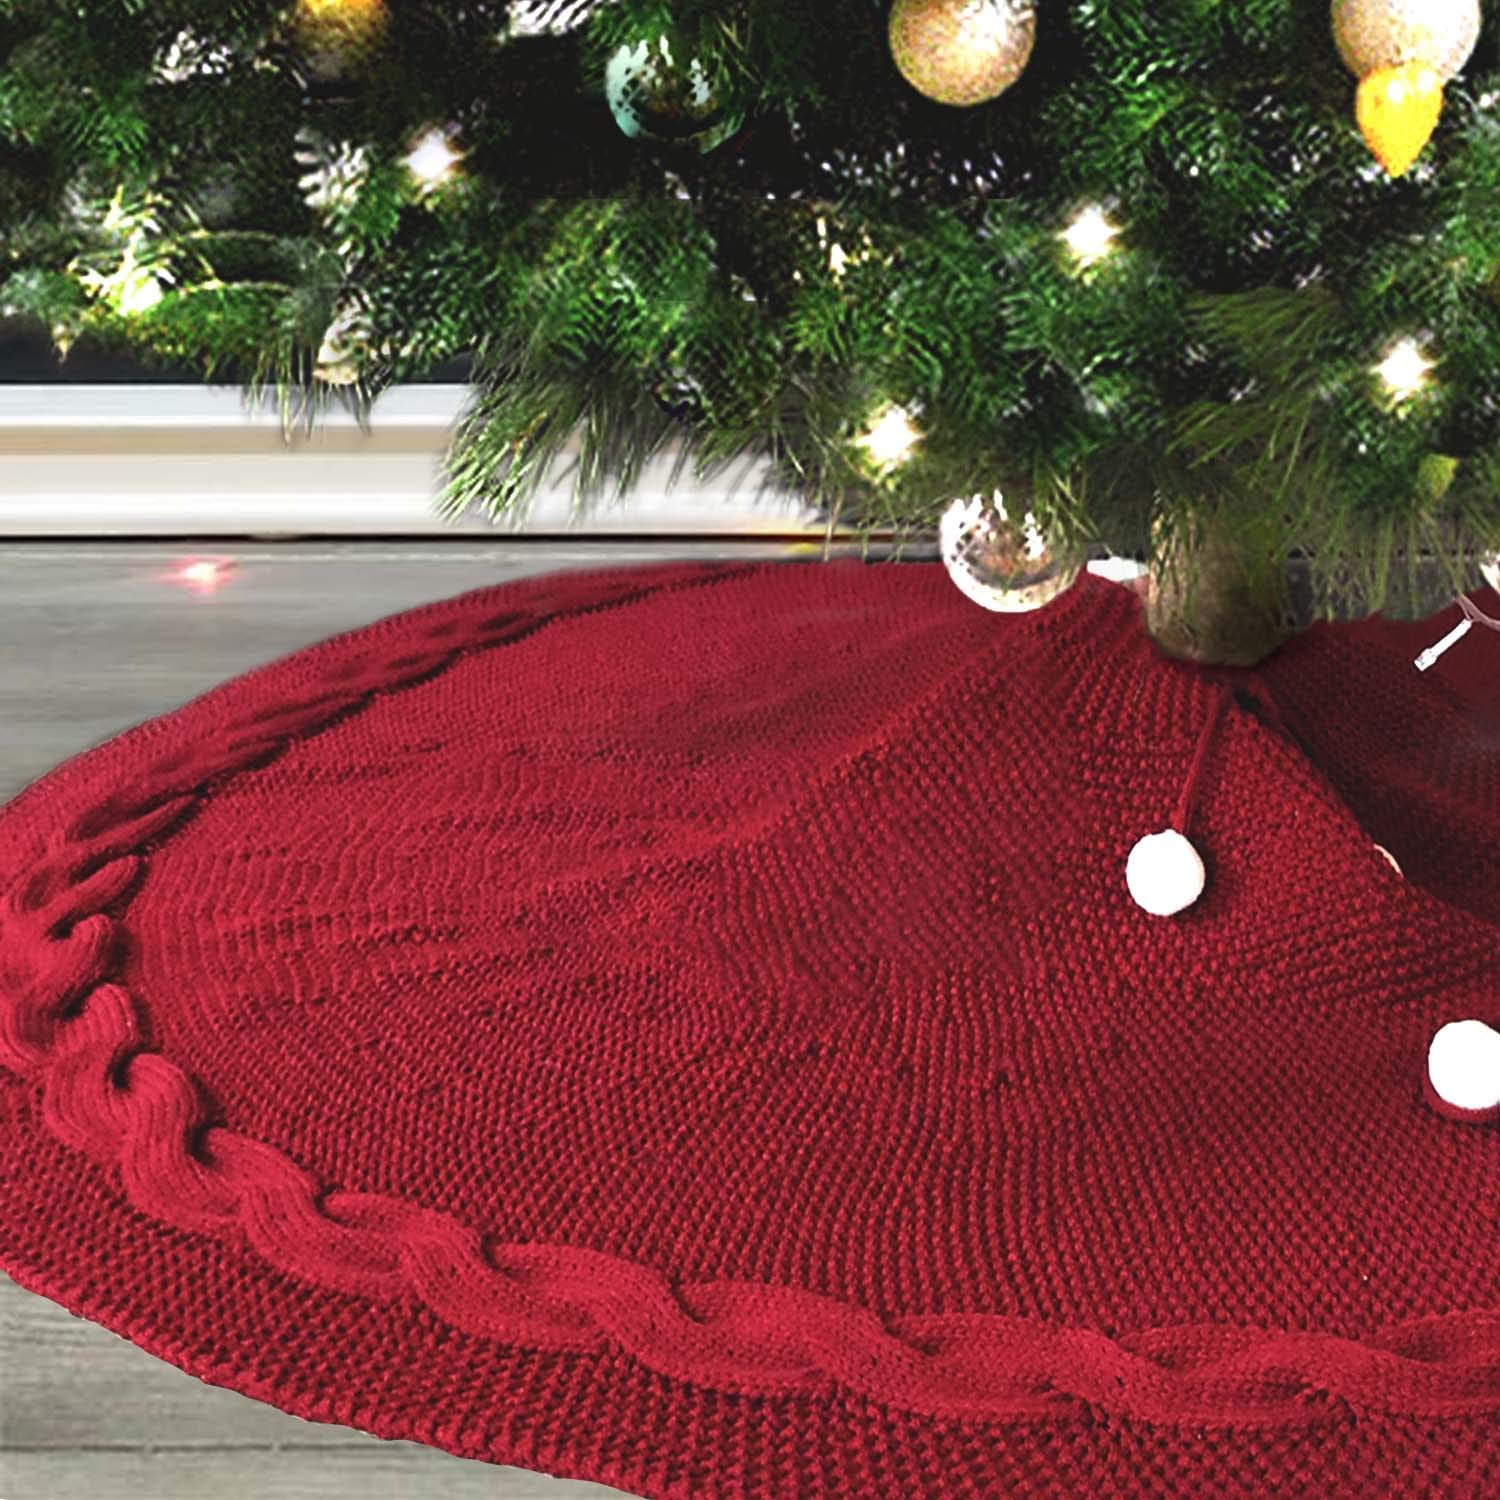 MACUNIN Christmas Tree Skirt 48 inches Traditional Knitted Thick Rustic Tree Skirt Off White Luxury Skirt for Xmas Holiday Decorations Indoor Outdoor